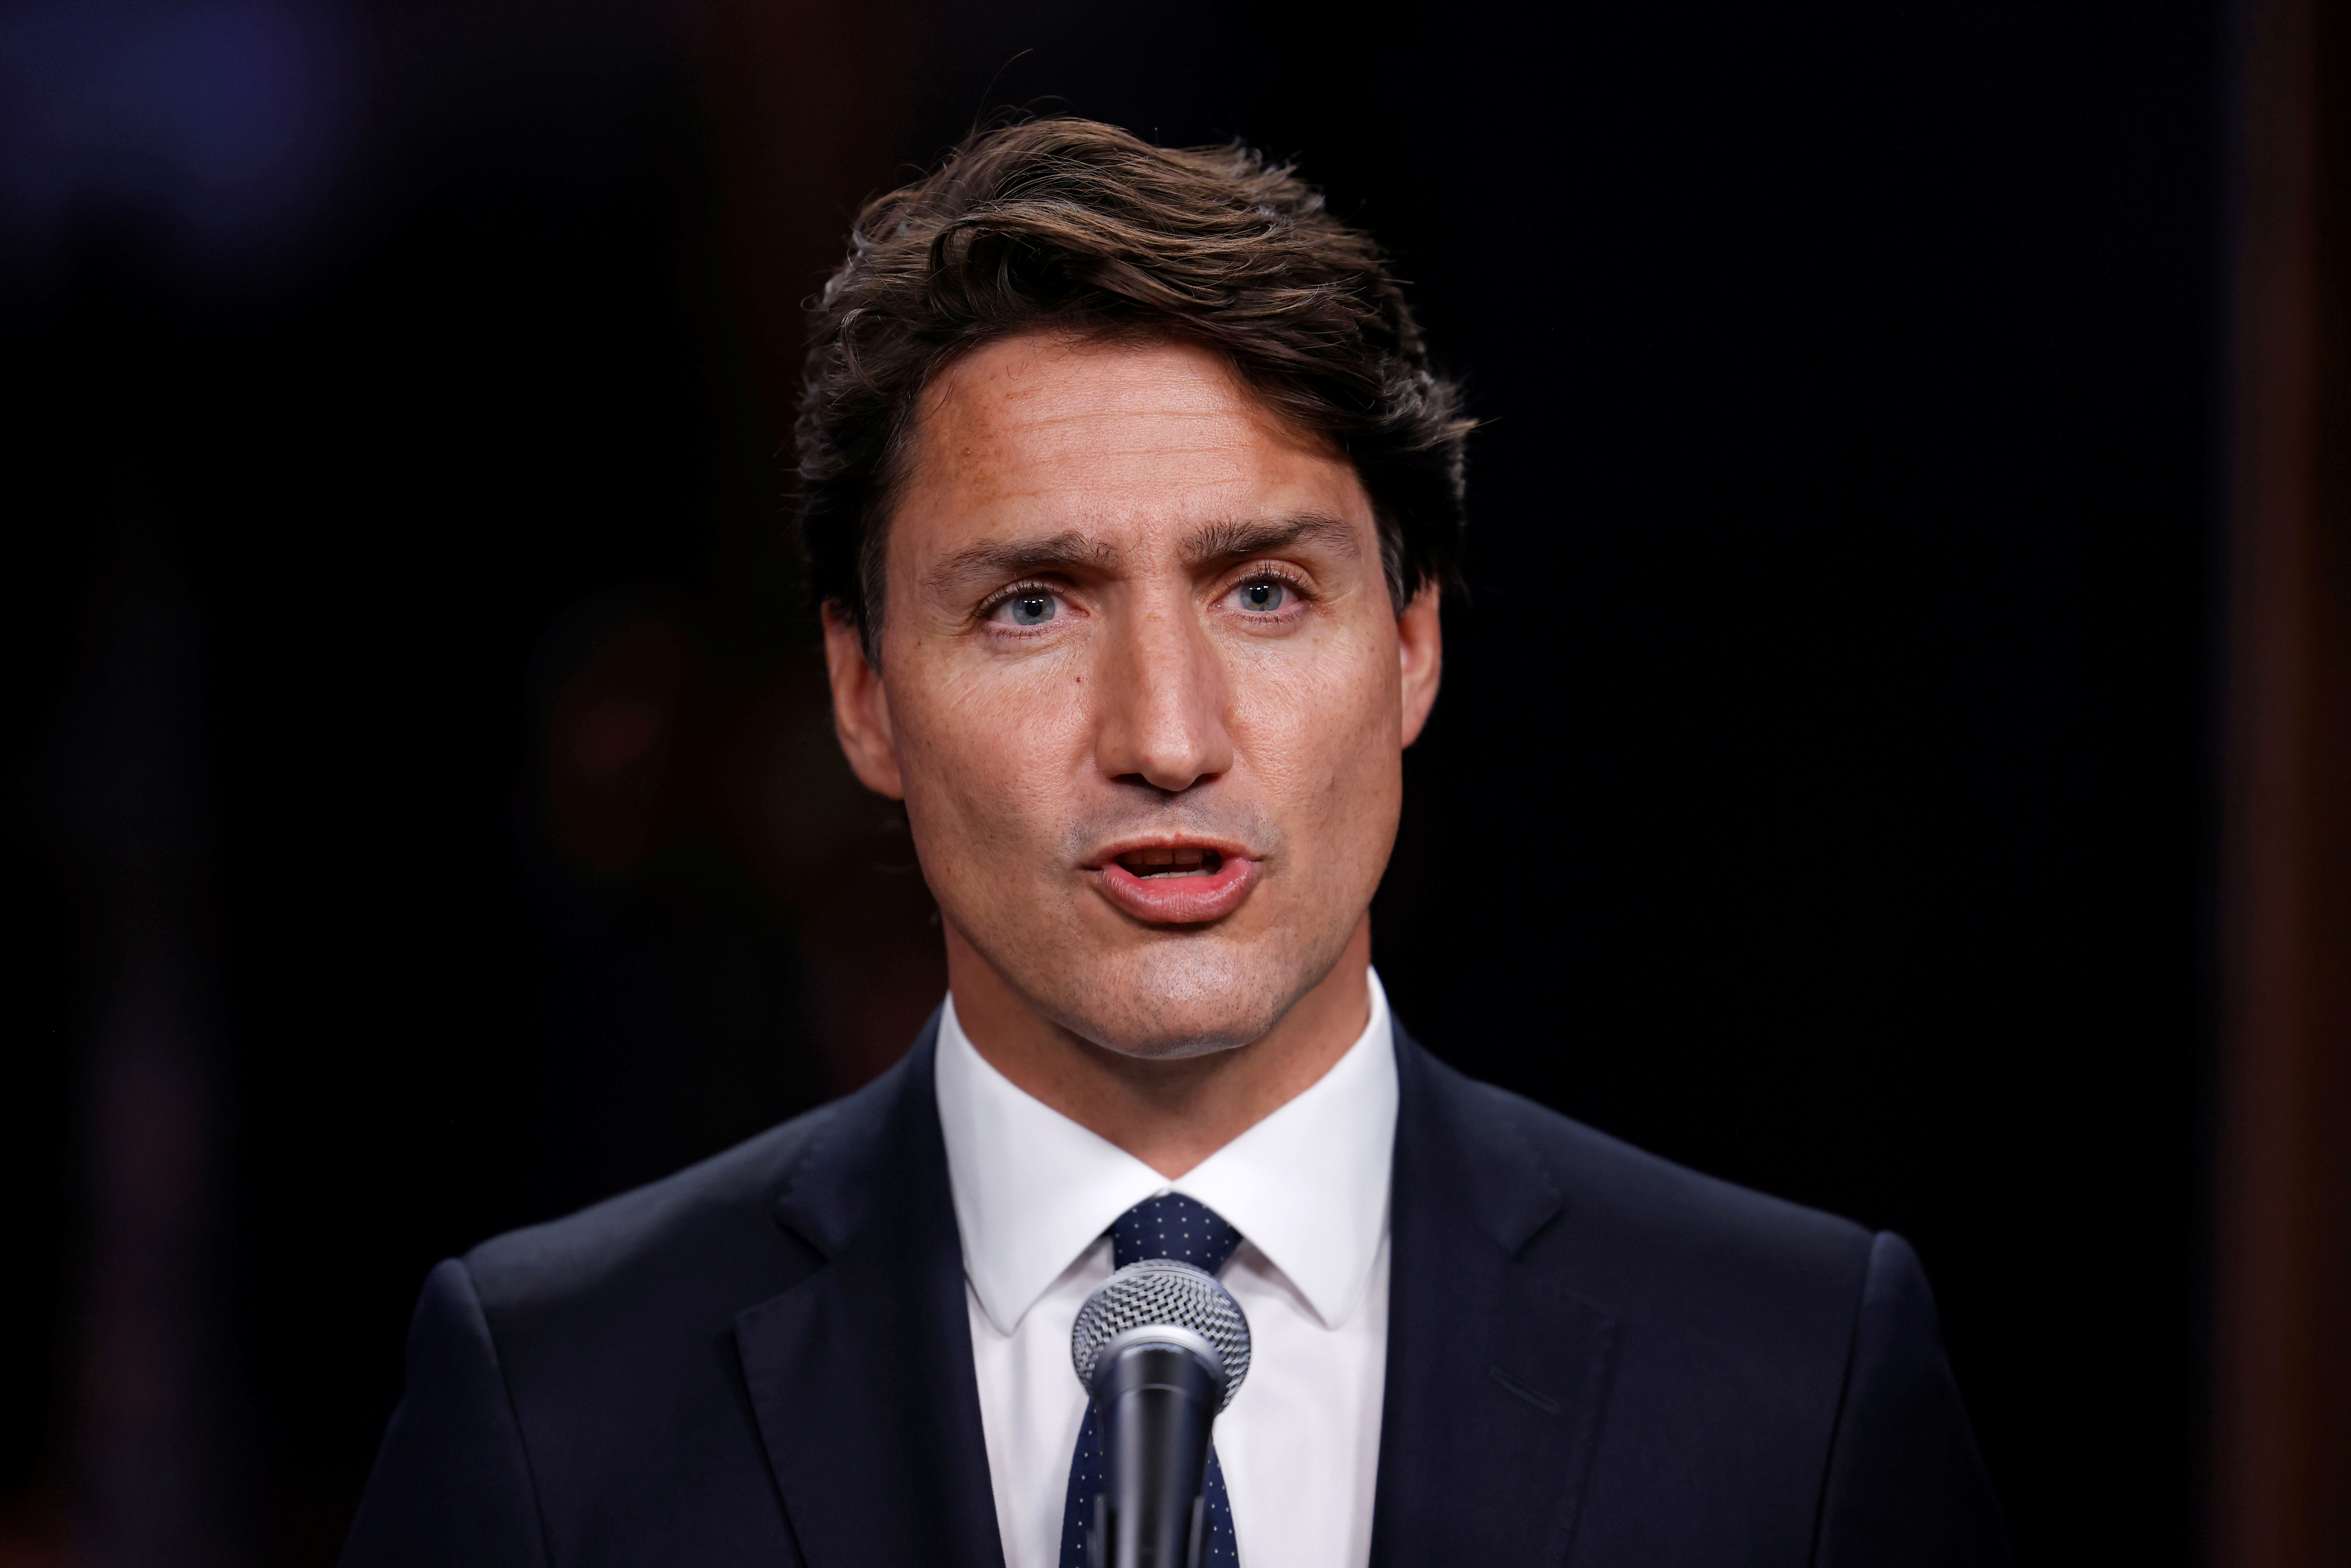 Canada's Liberal Prime Minister Justin Trudeau speaks at a news conference after the second of three two-hour debates ahead of the September 20 election, at the Canadian Museum of History in Gatineau, Quebec, Canada September 8, 2021. REUTERS/Blair Gable/File Photo